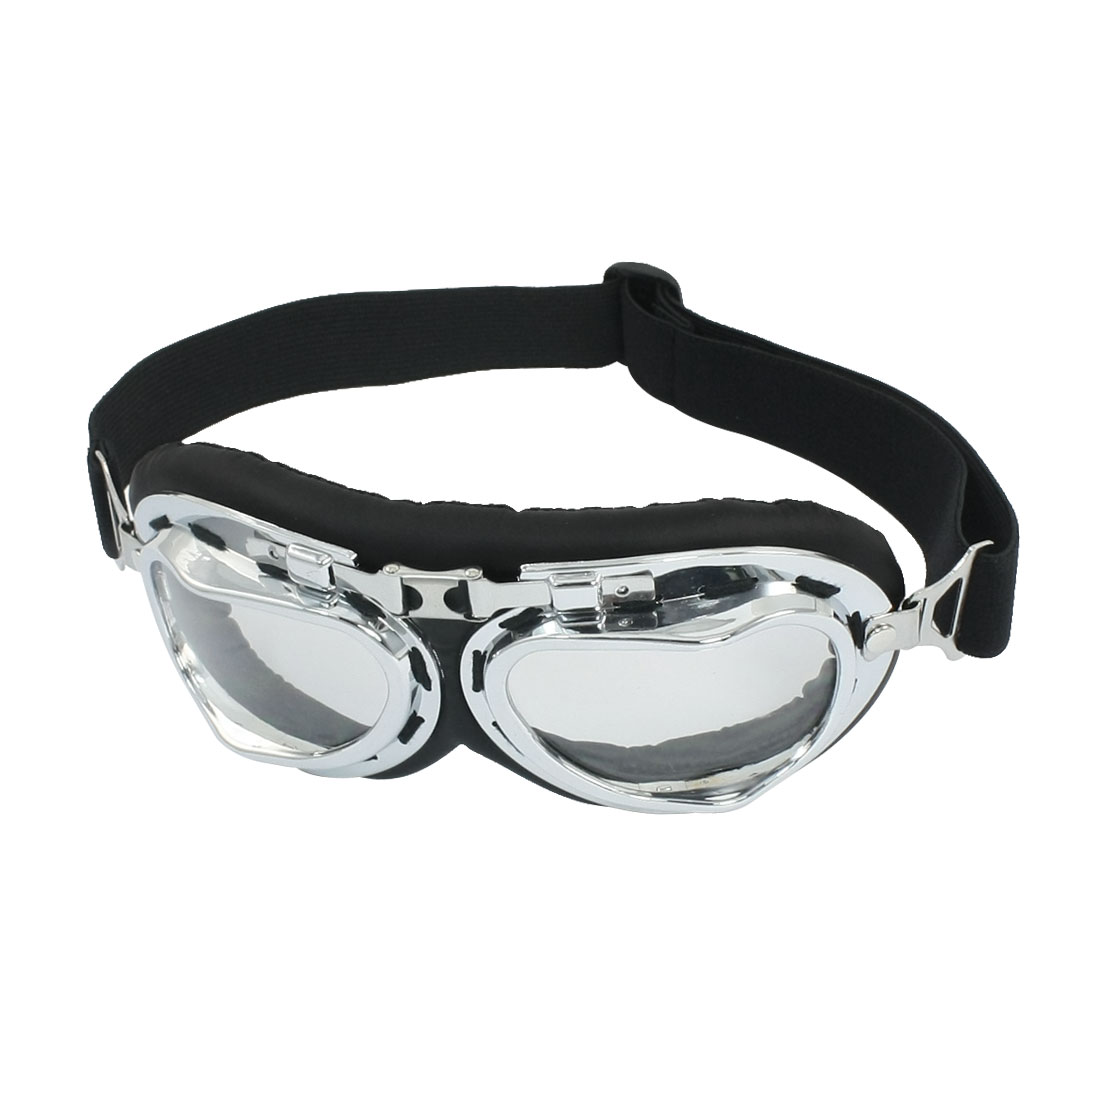 Men Ladires Clear Lens Dilver Tone Frame Ski Skating Skiing Goggles by